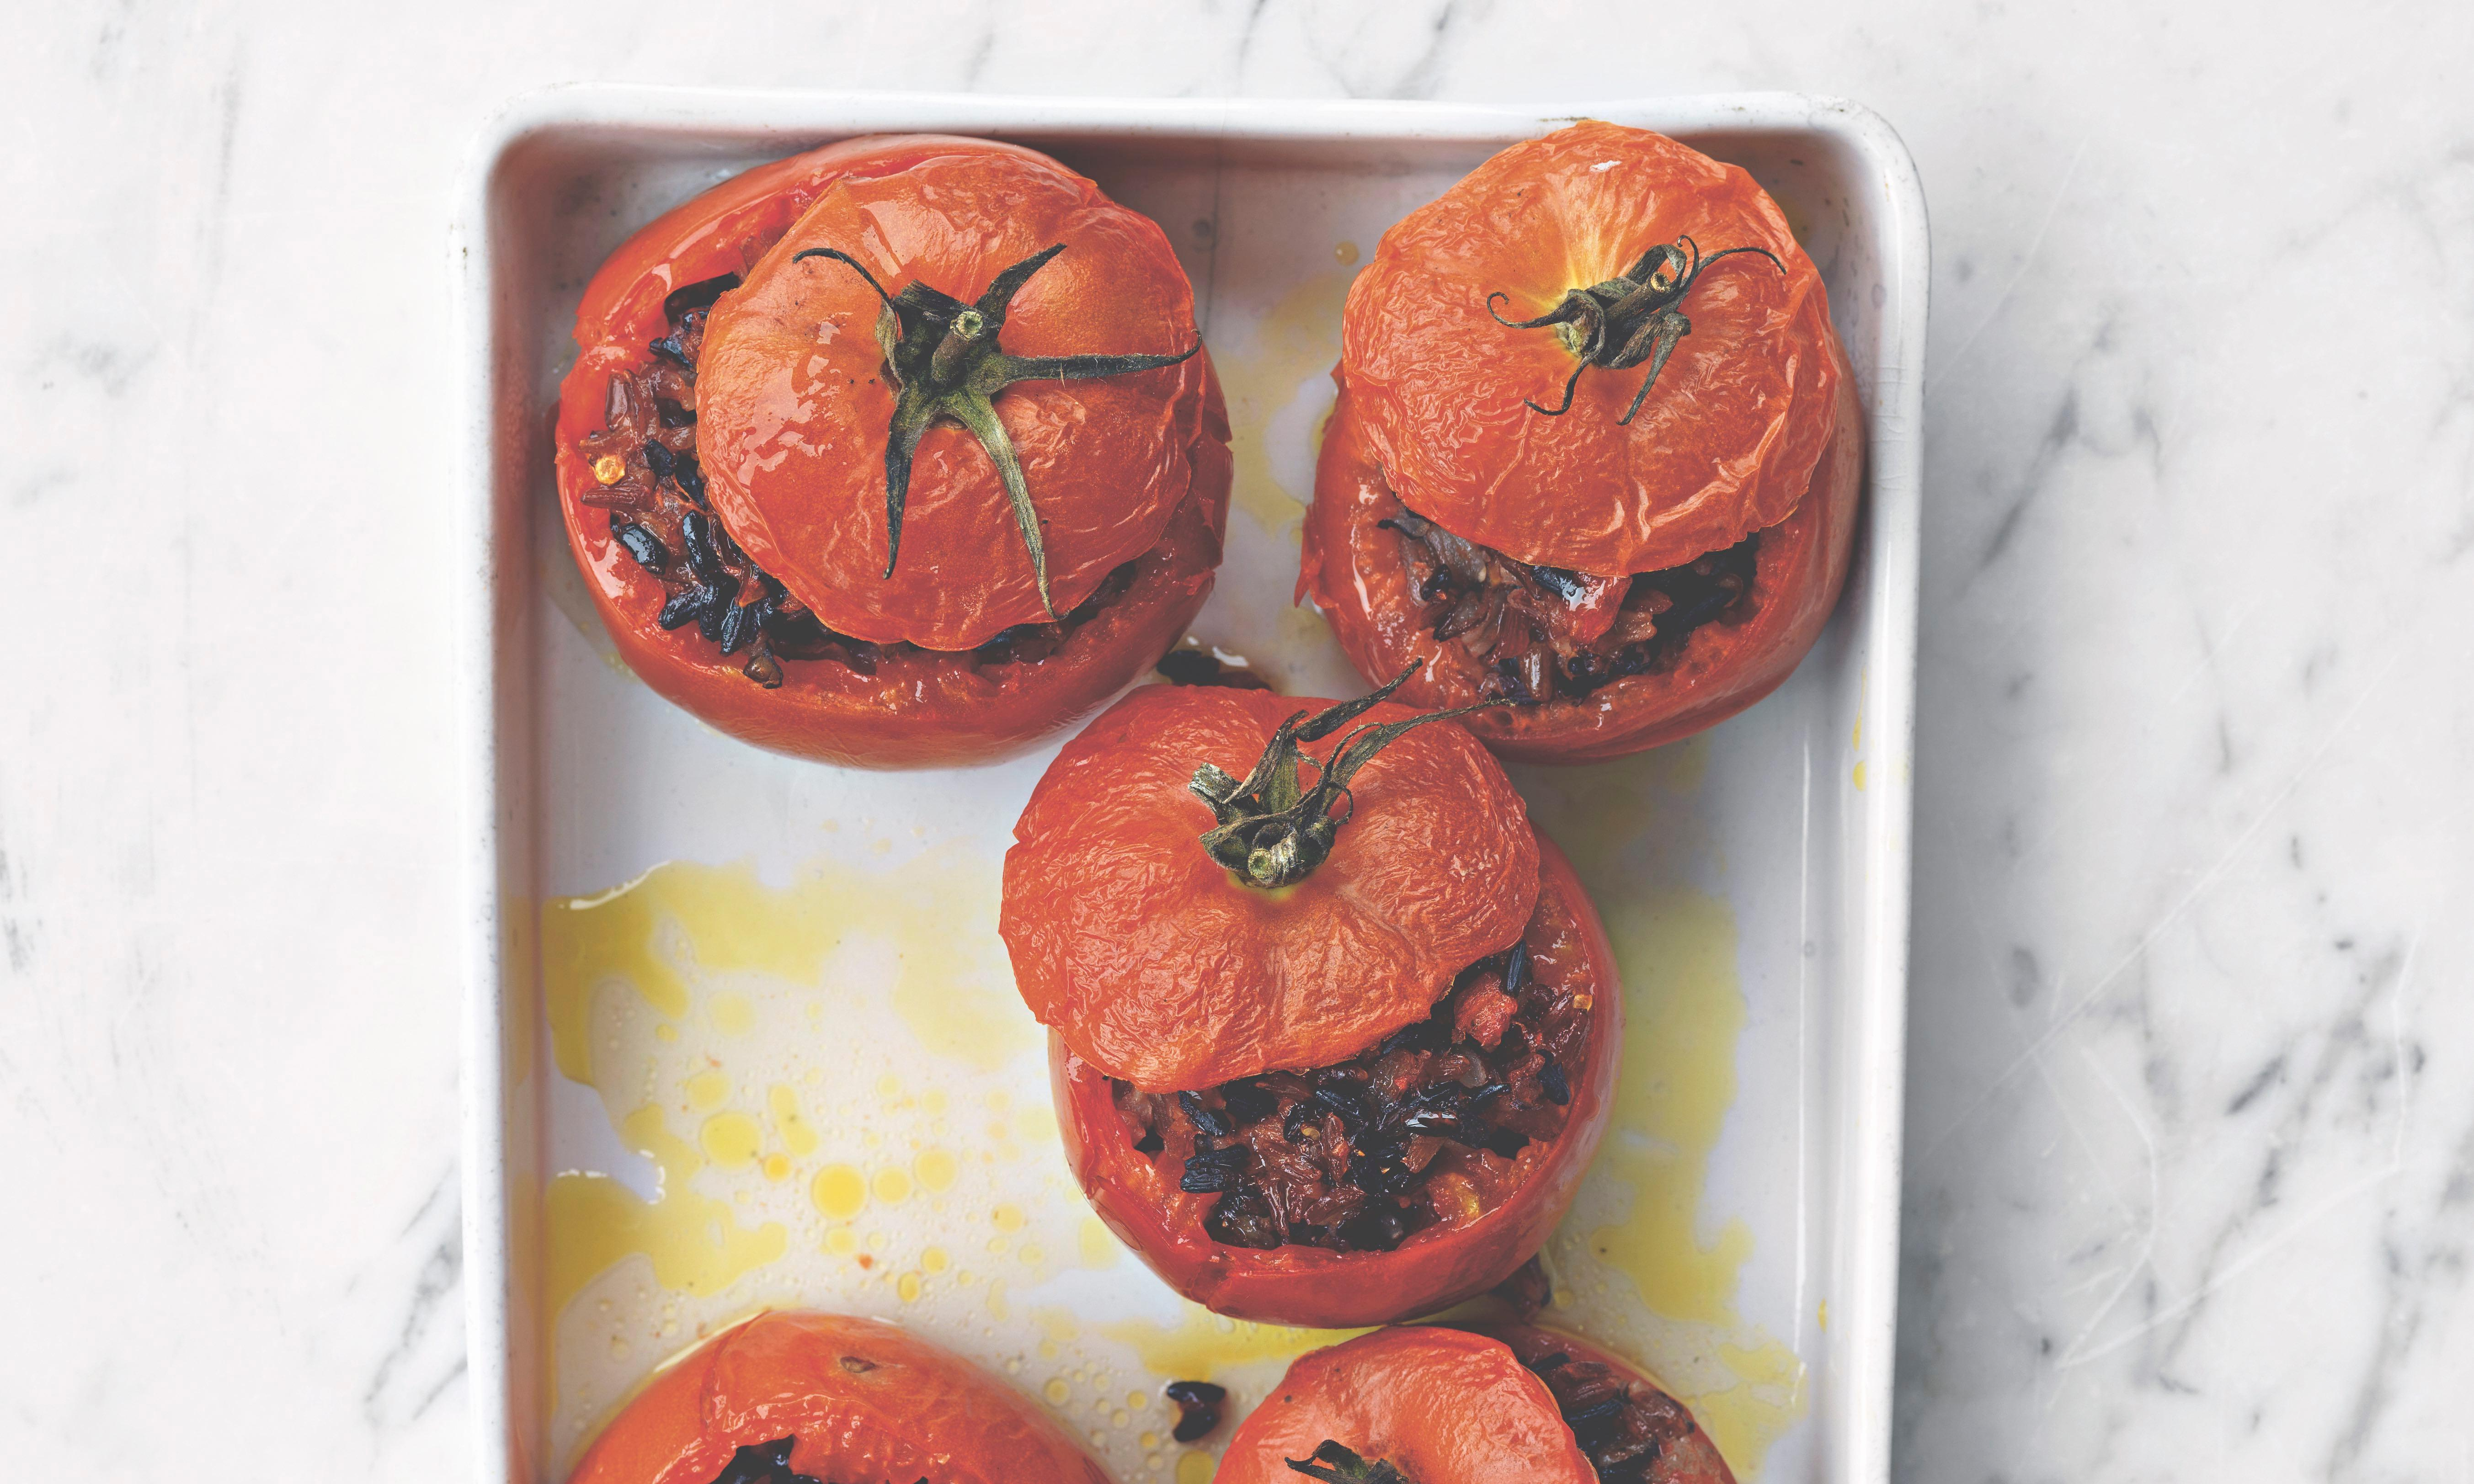 No-waste cooking: stuffed tomatoes with leftover rice